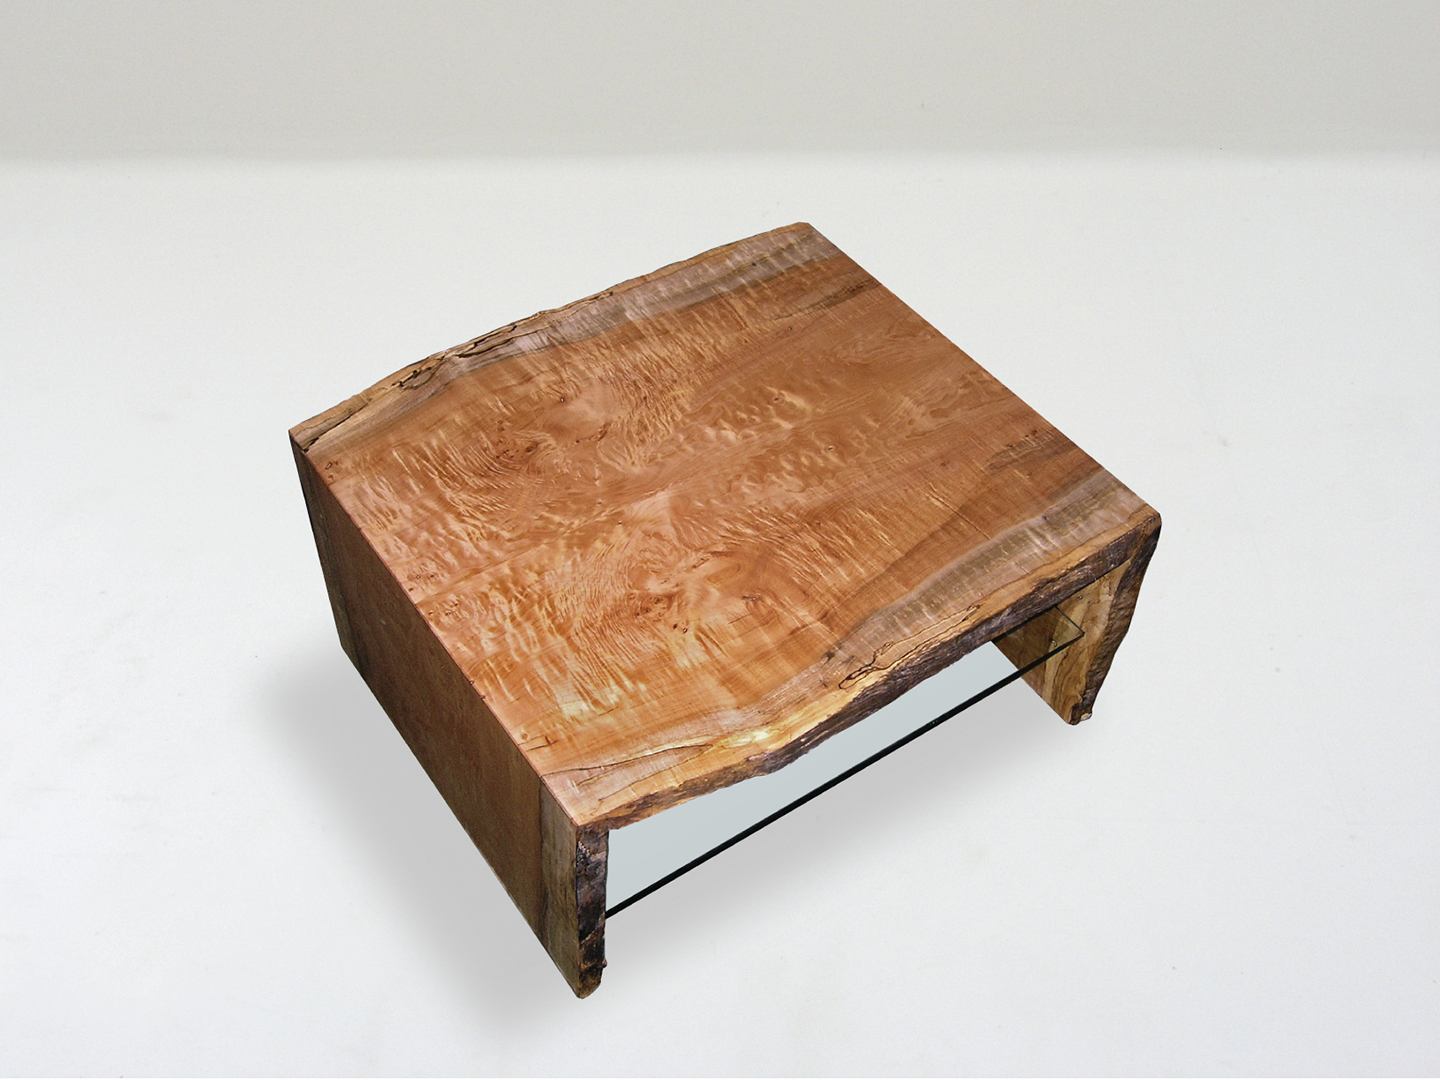 Mapleart custom wood furniture vancouver bcapple coffee for Coffee tables vancouver canada